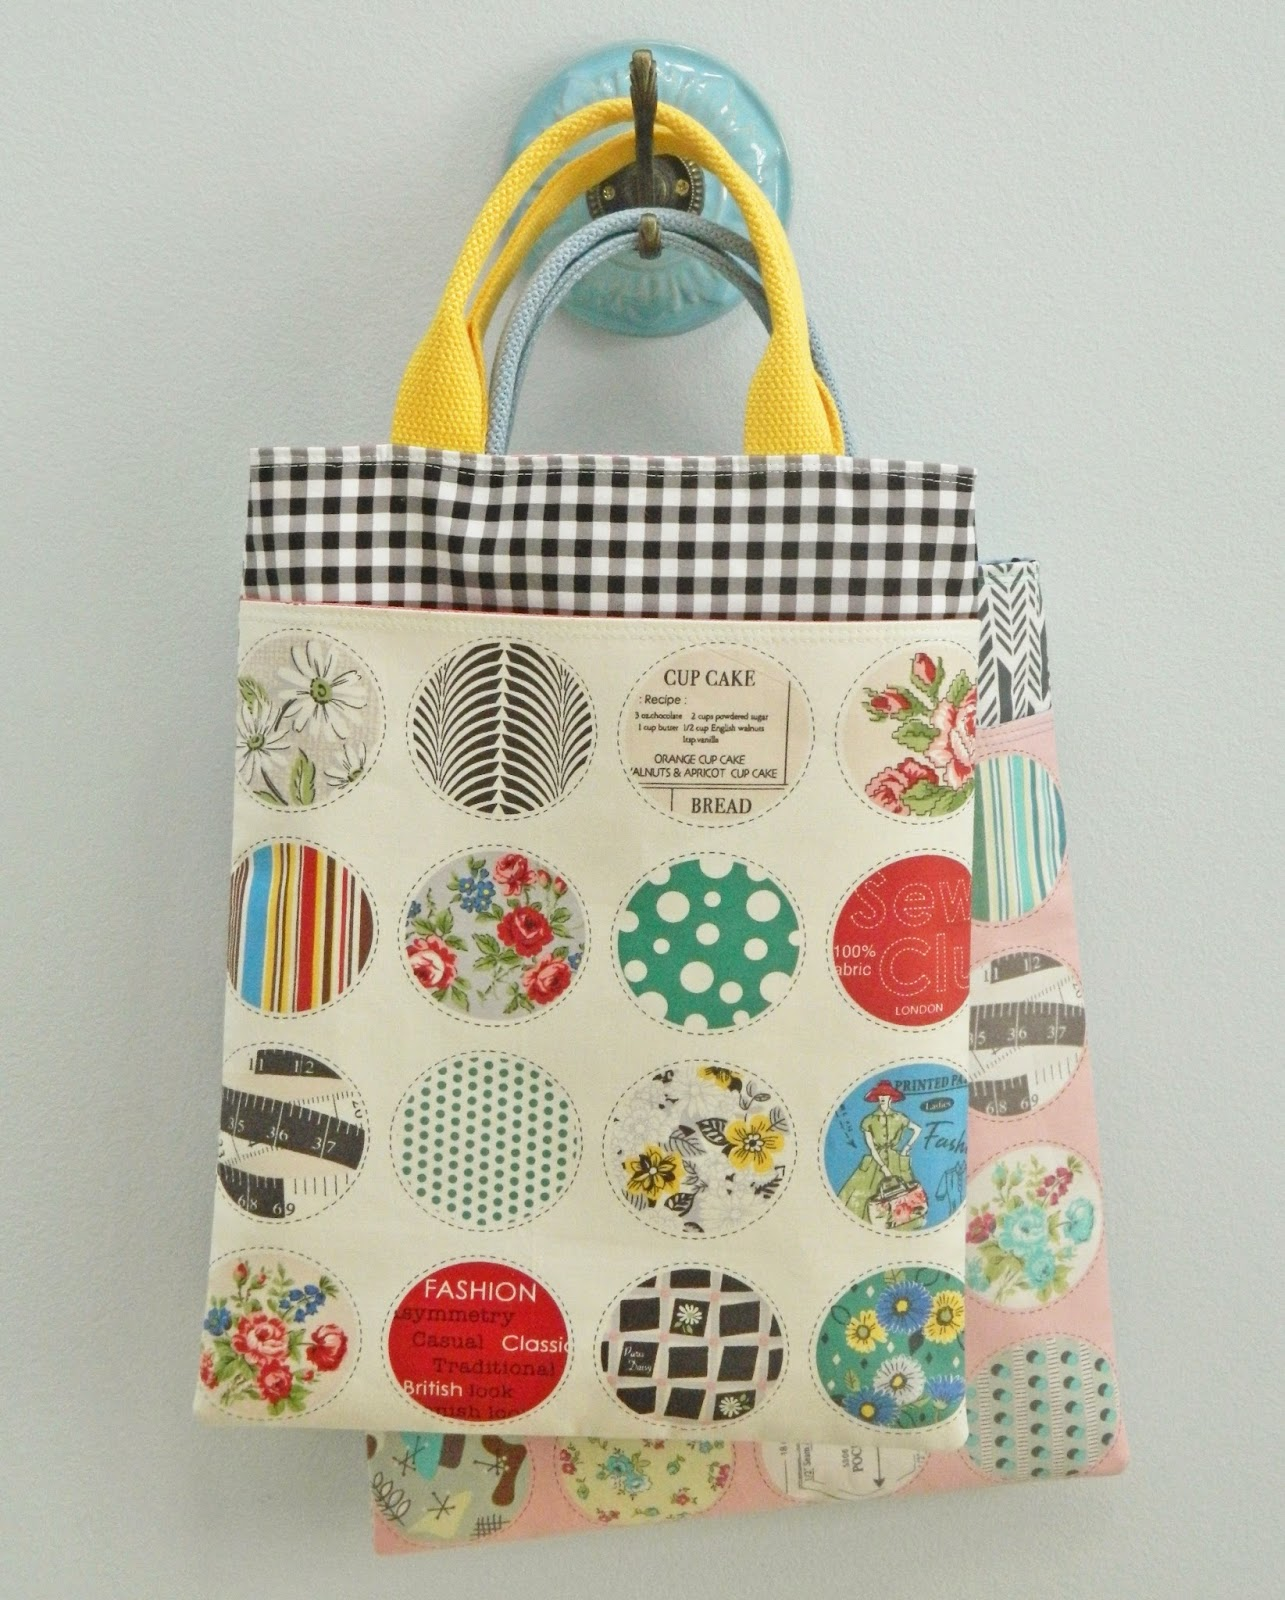 http://sotakhandmade.blogspot.com/2014/01/pretty-little-tote-tutorial.html